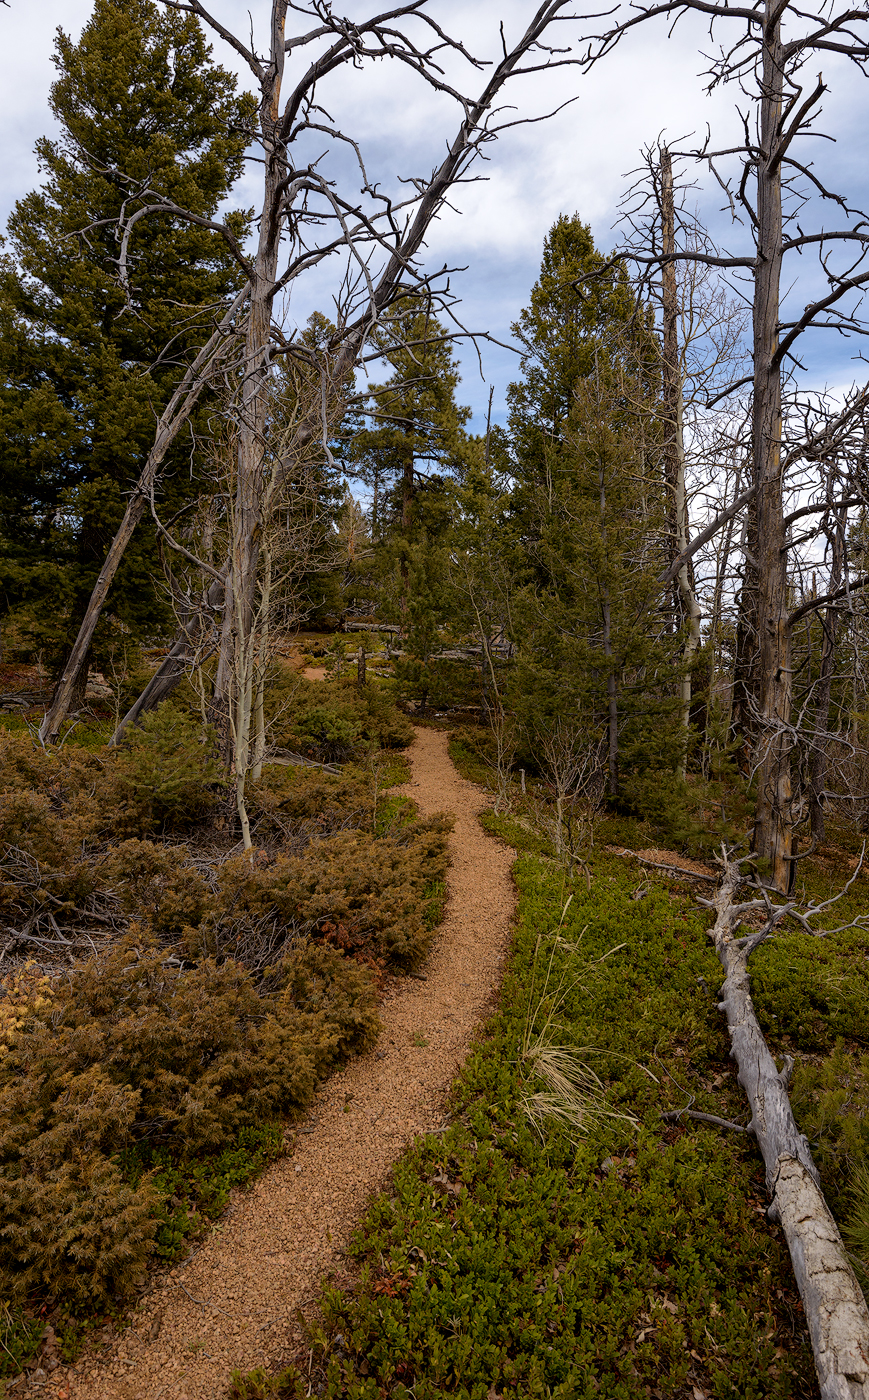 My favorite, pebbly granite (technical term) trails